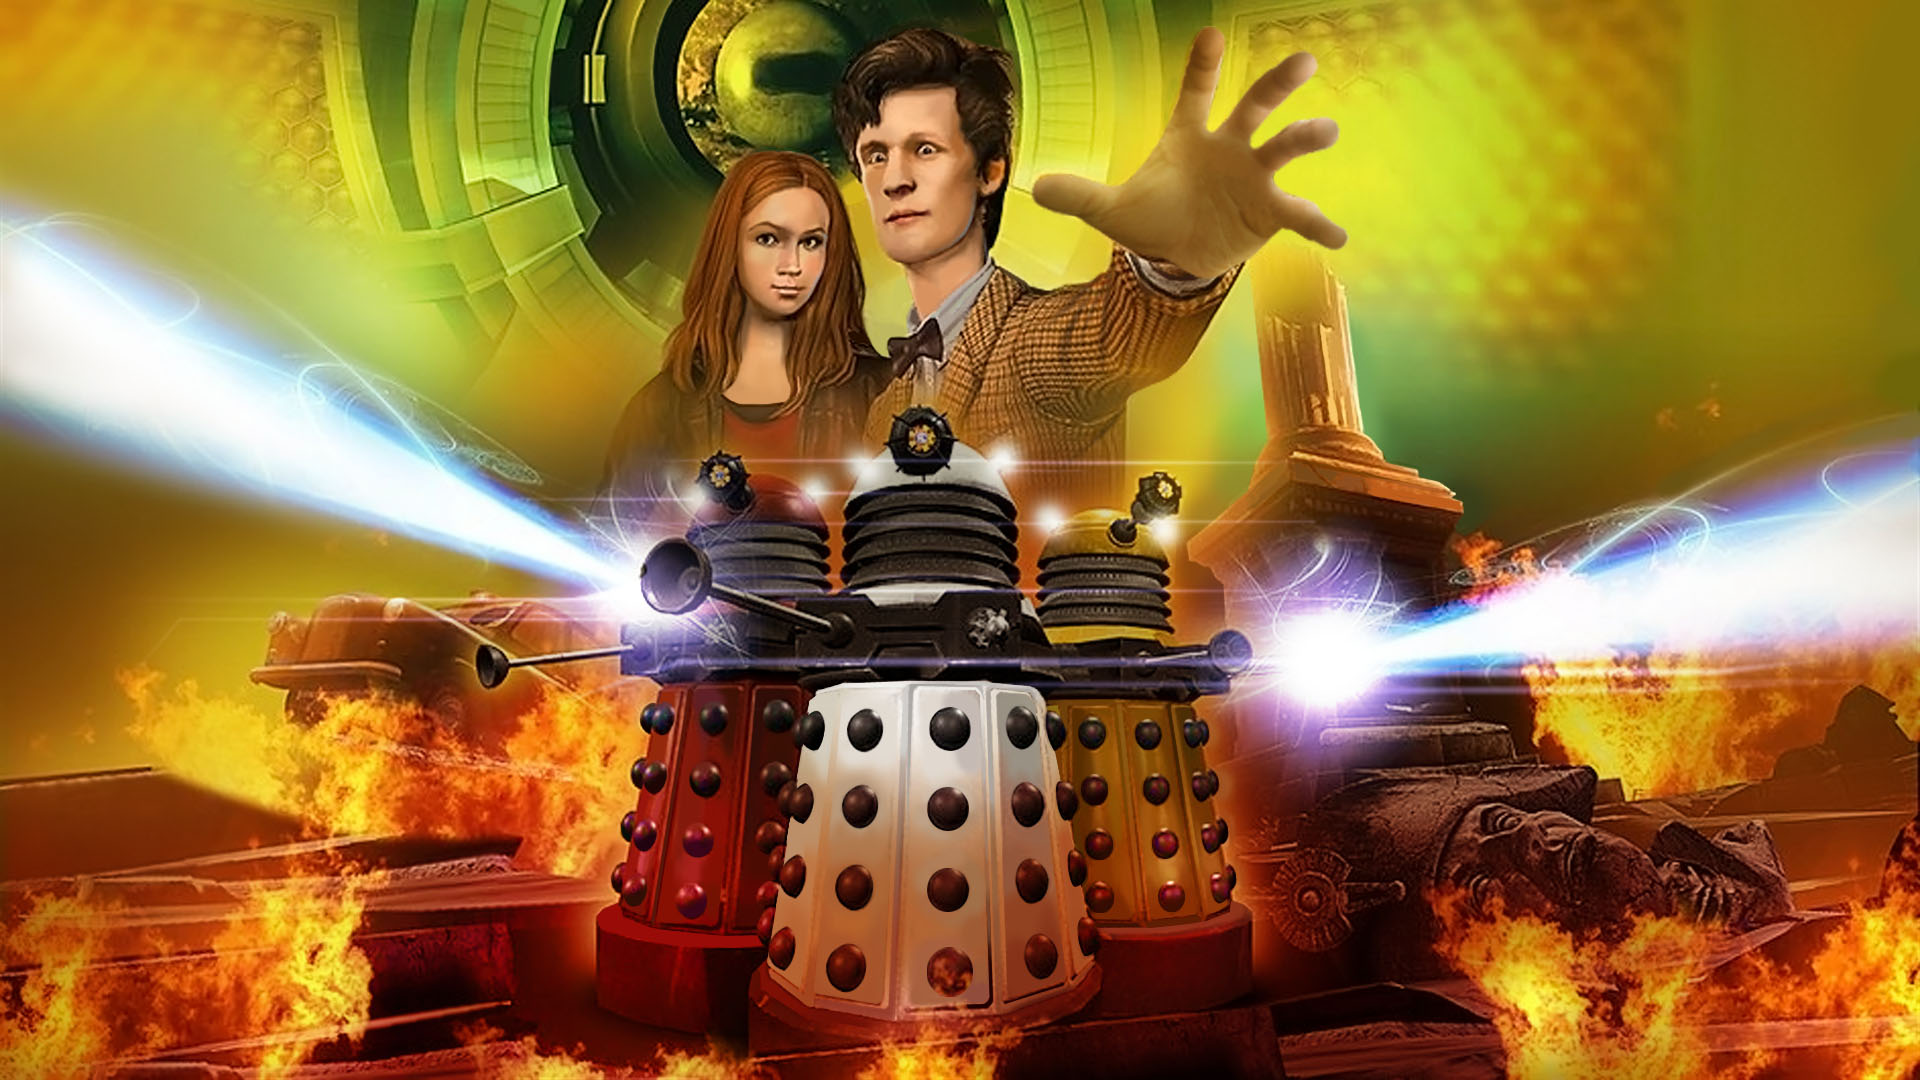 Steam Card Exchange Showcase Doctor Who The Adventure Games Circuit Panic Android 365 Free Download 1 Of 9artwork City Daleks